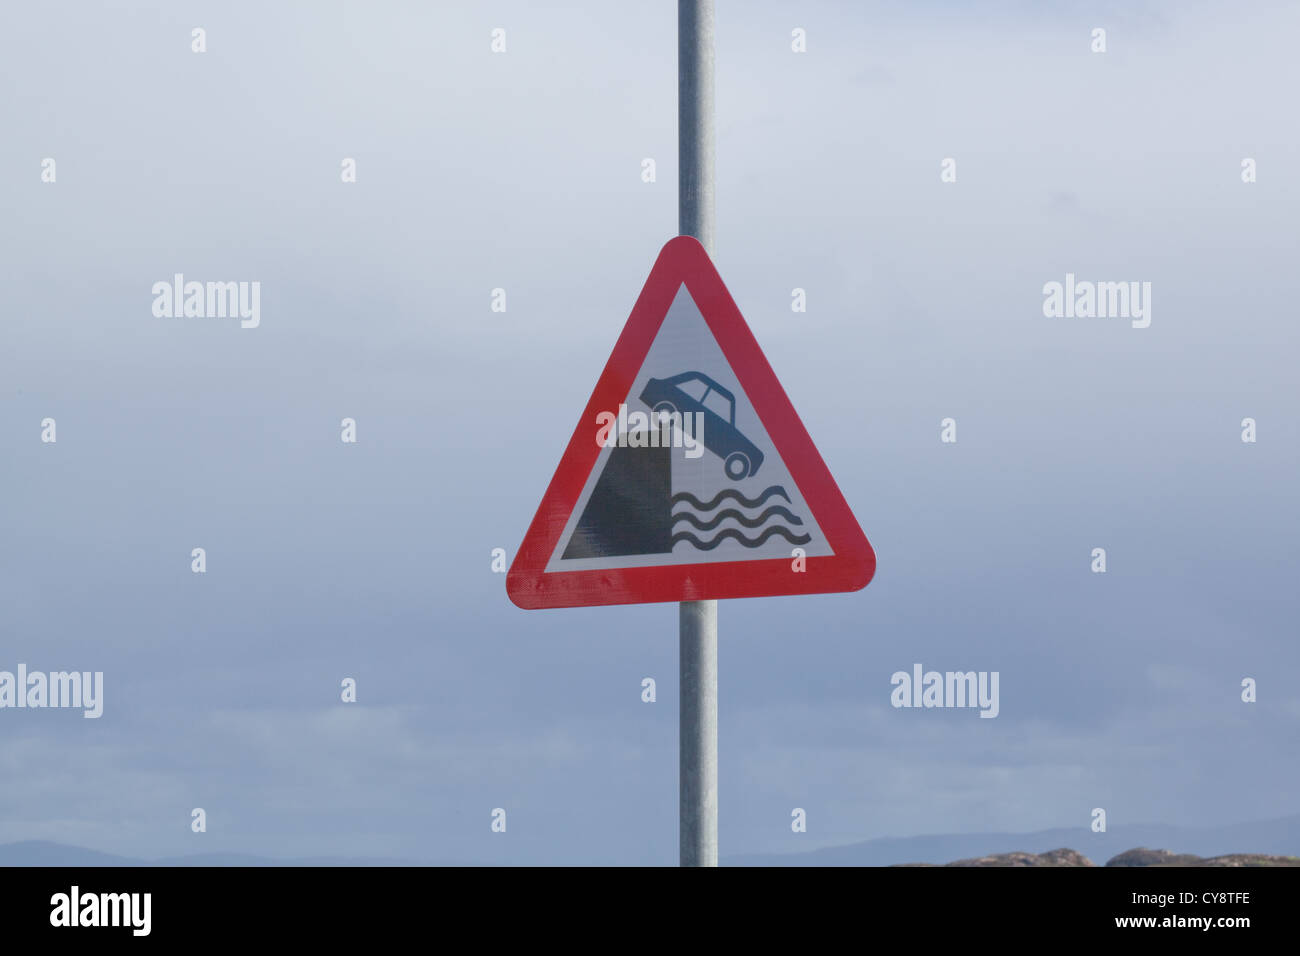 Road Sign. Warning regarding pier and jetty ending to vehicles on arrival intending to embark on a ferry. St. Ronan's - Stock Image